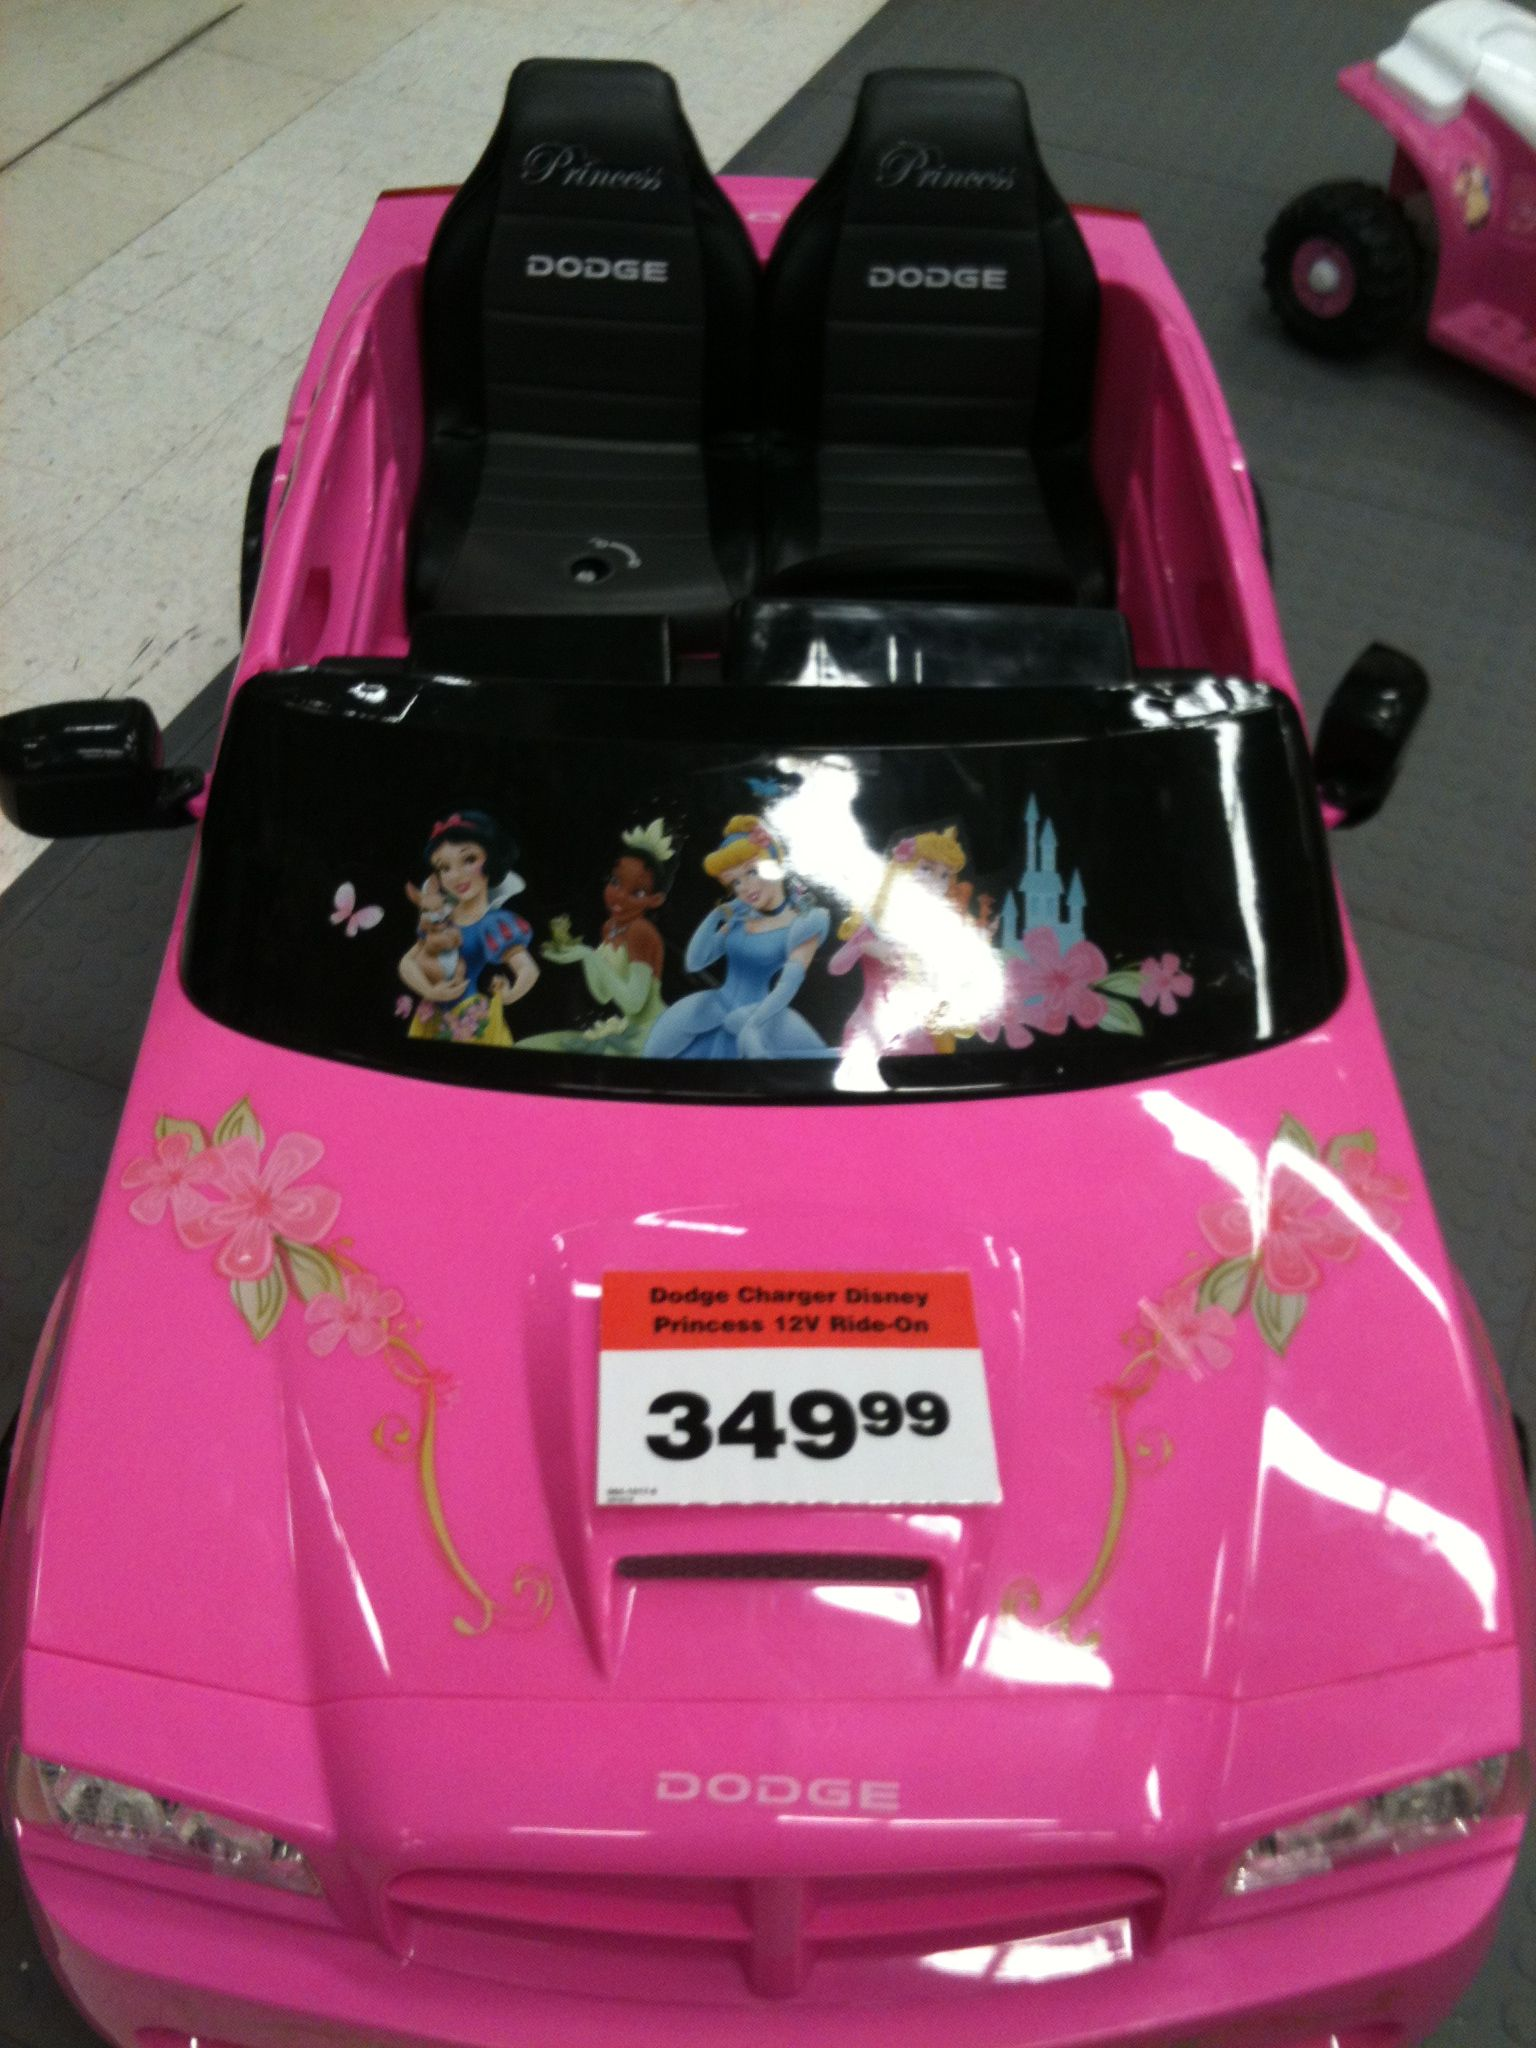 Pink Dodge Charger : dodge, charger, Layla's, Dream, Disney, Princess, Dodge, Charger, Seats,